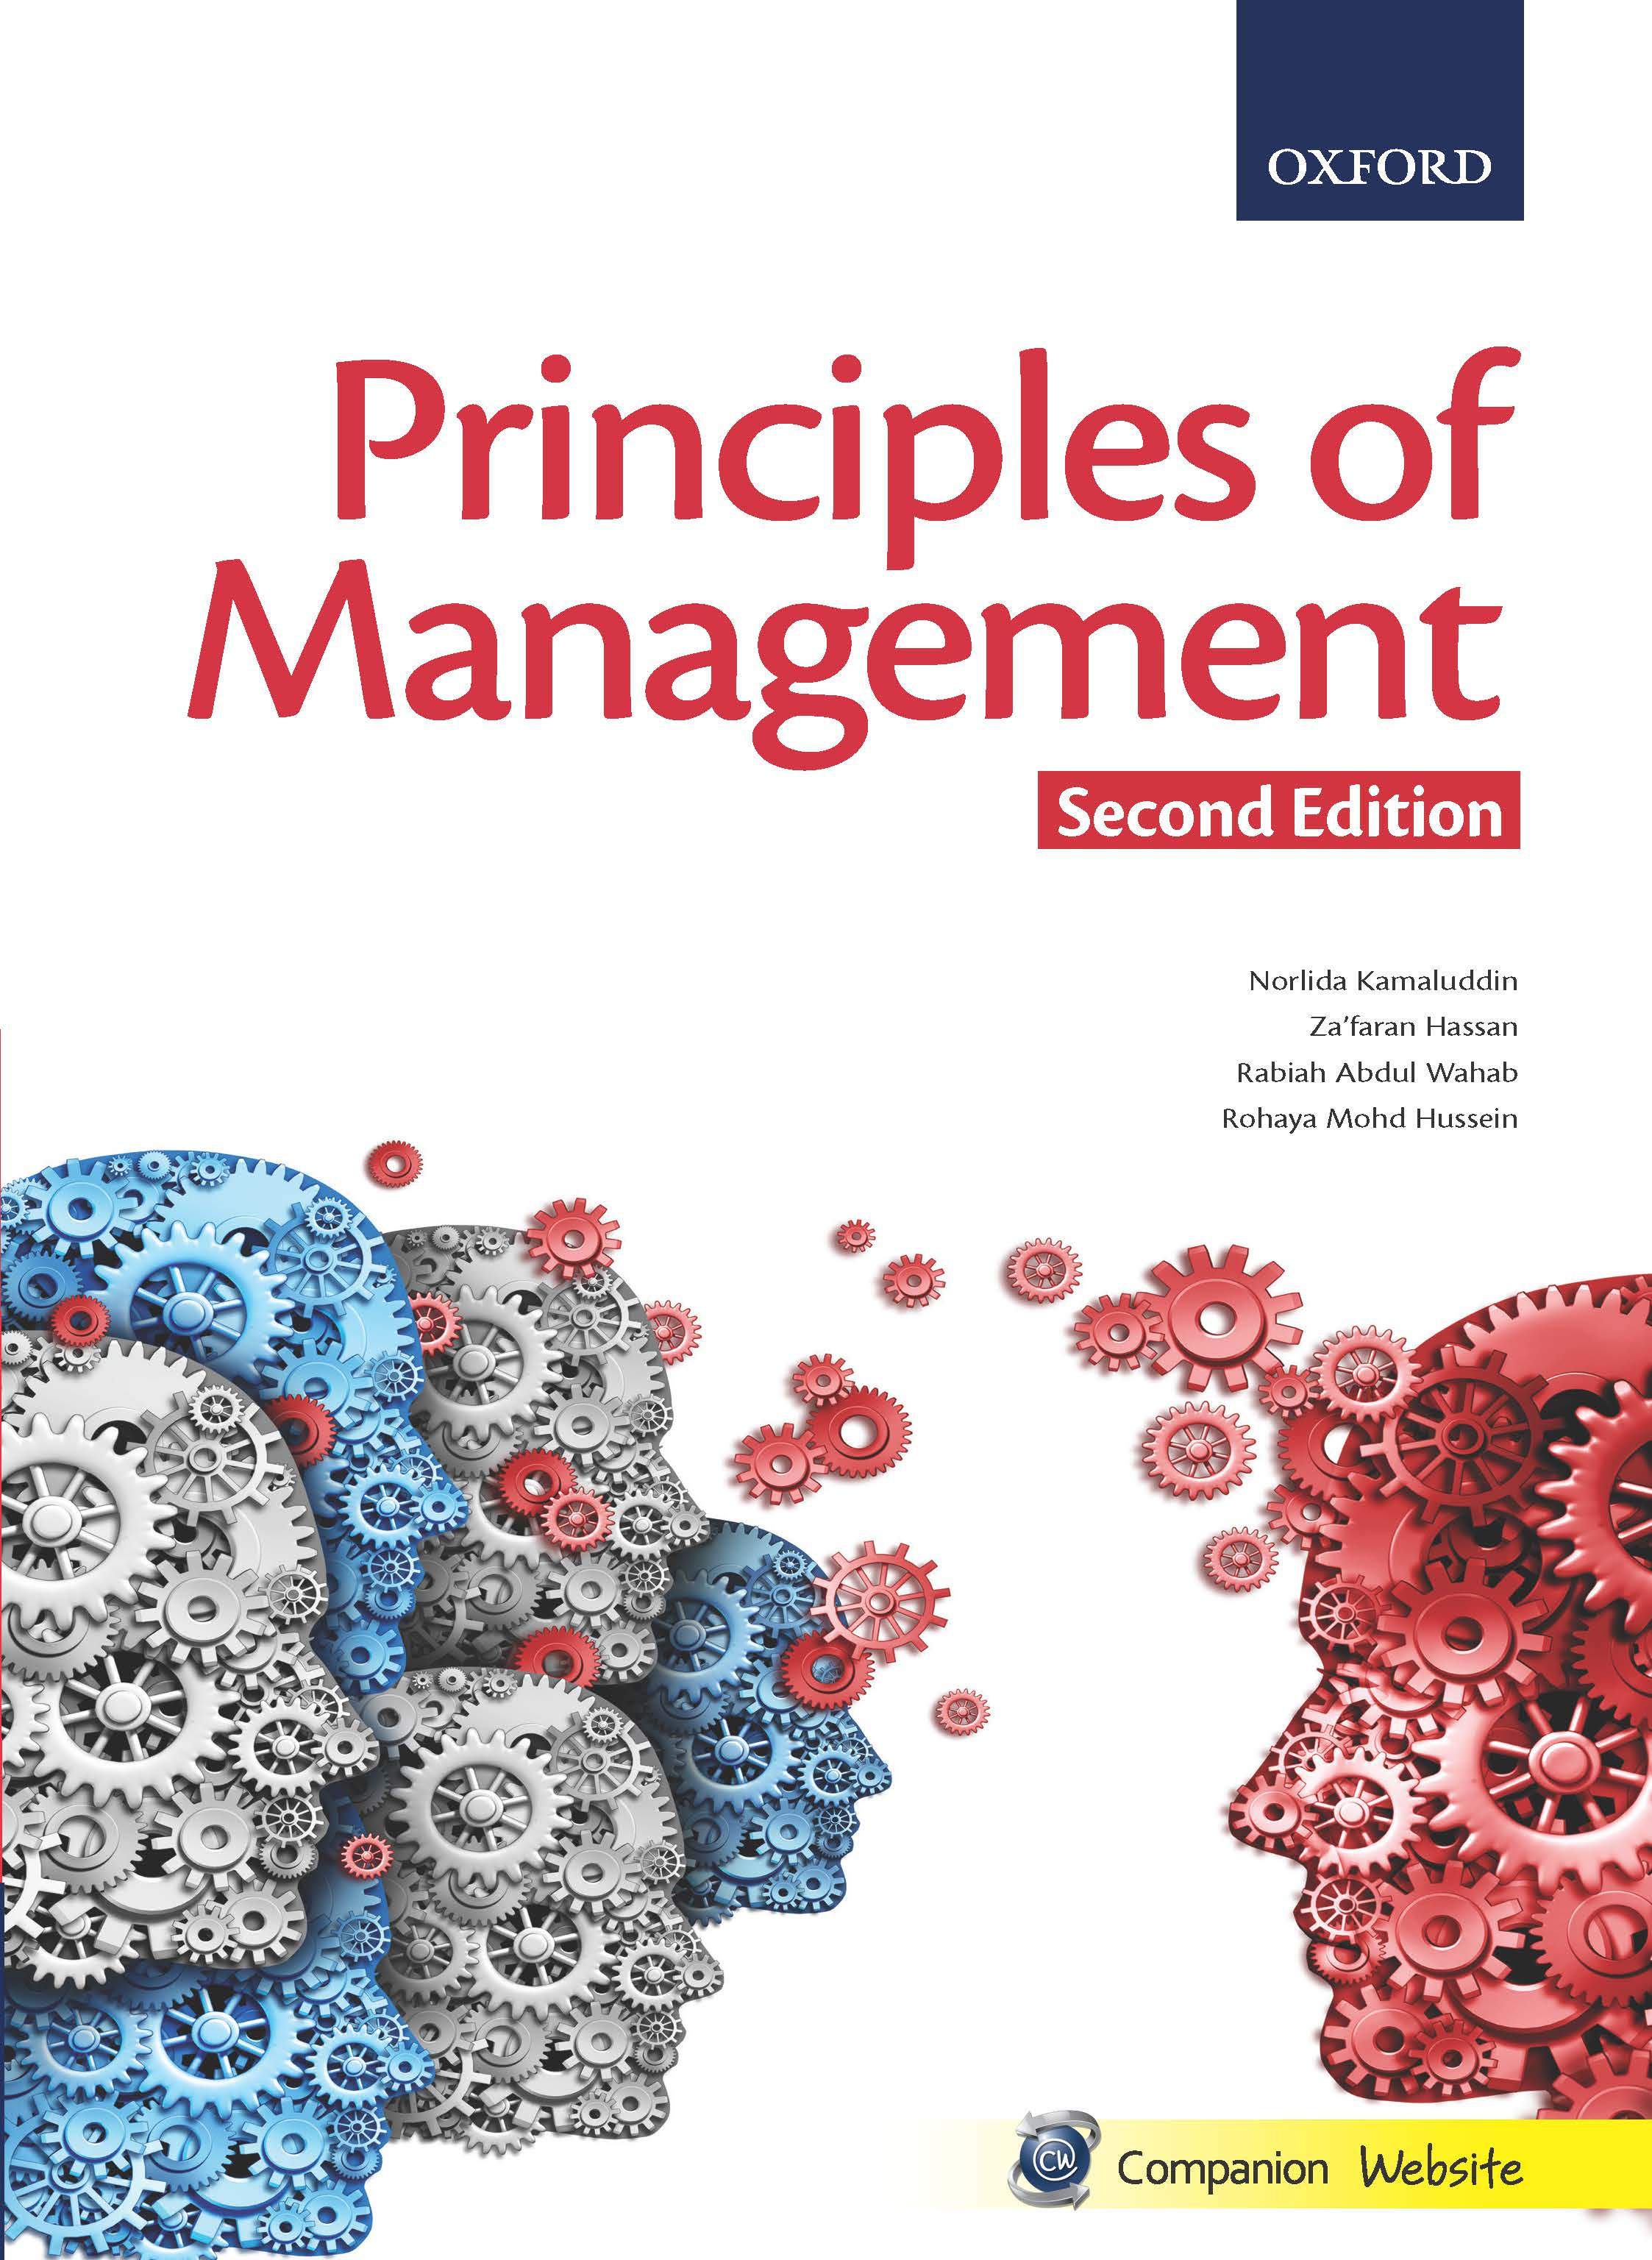 principles of magement Principles of management v10 is a high quality yet affordable digital and print textbook that can be read and personalized online.